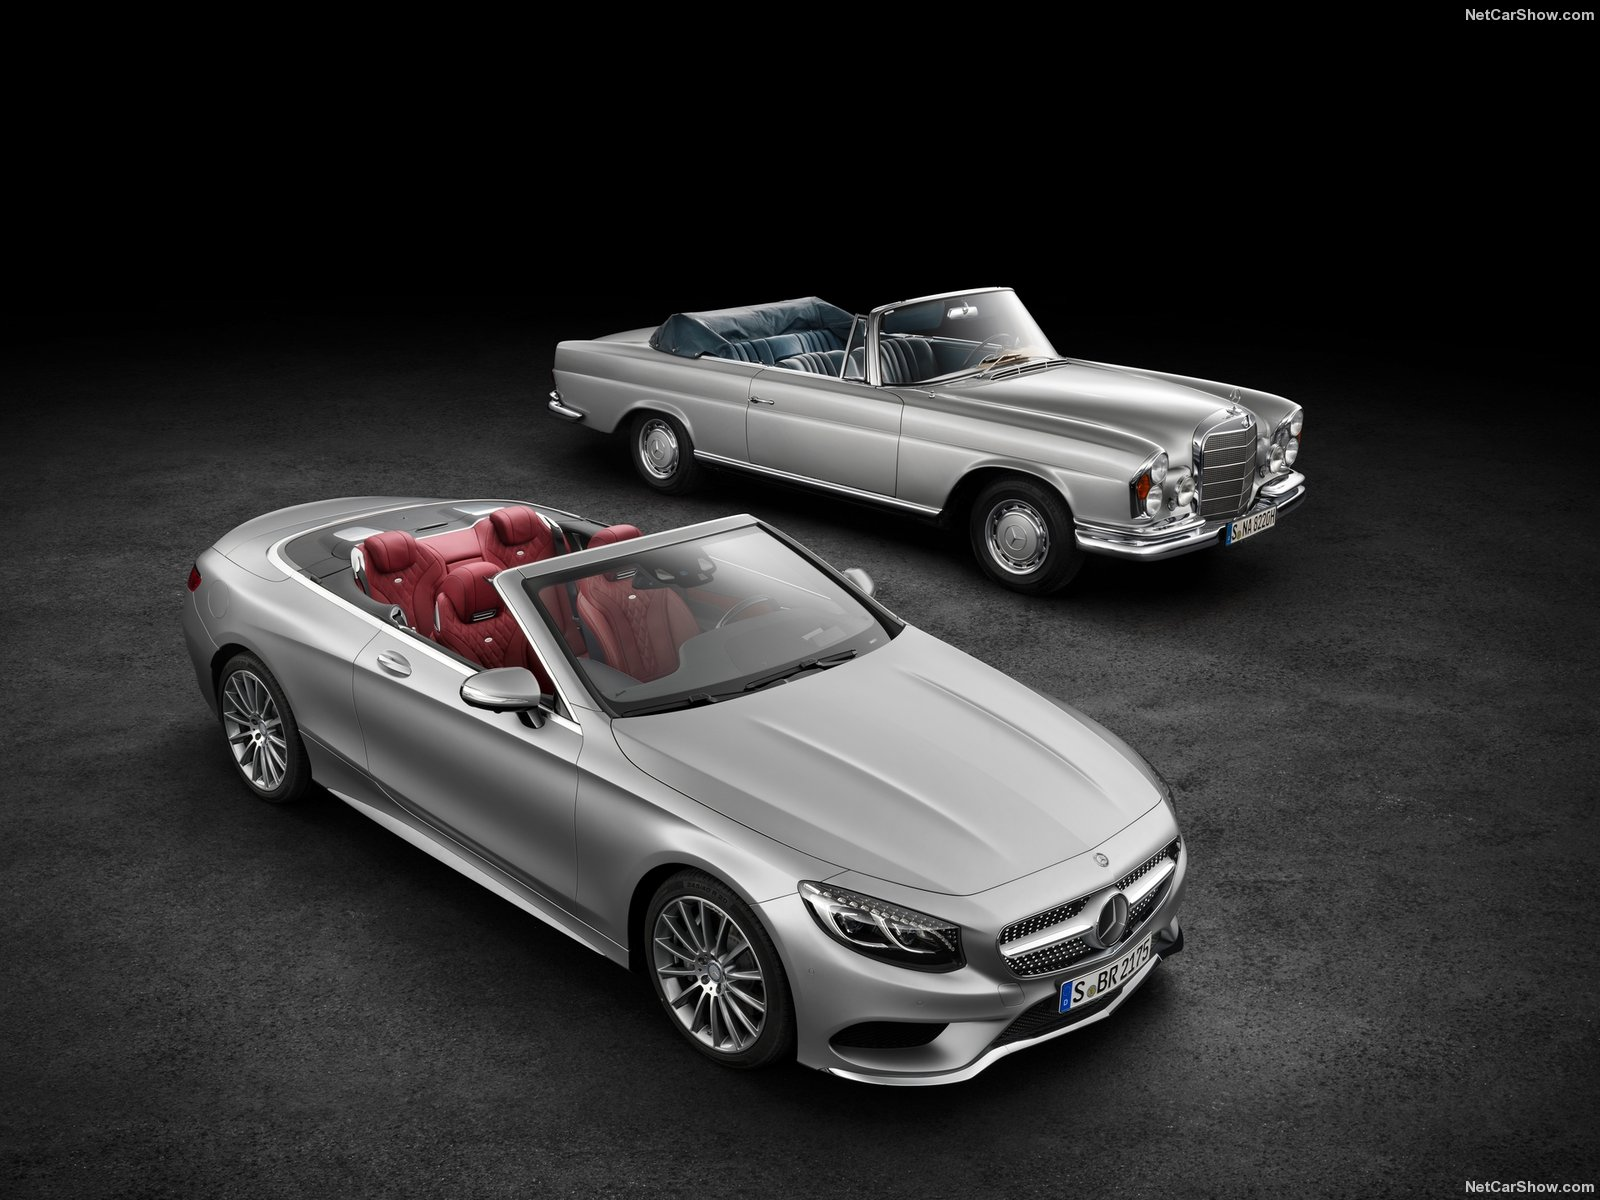 Mercedes-Benz S-Class Cabriolet photo 149679